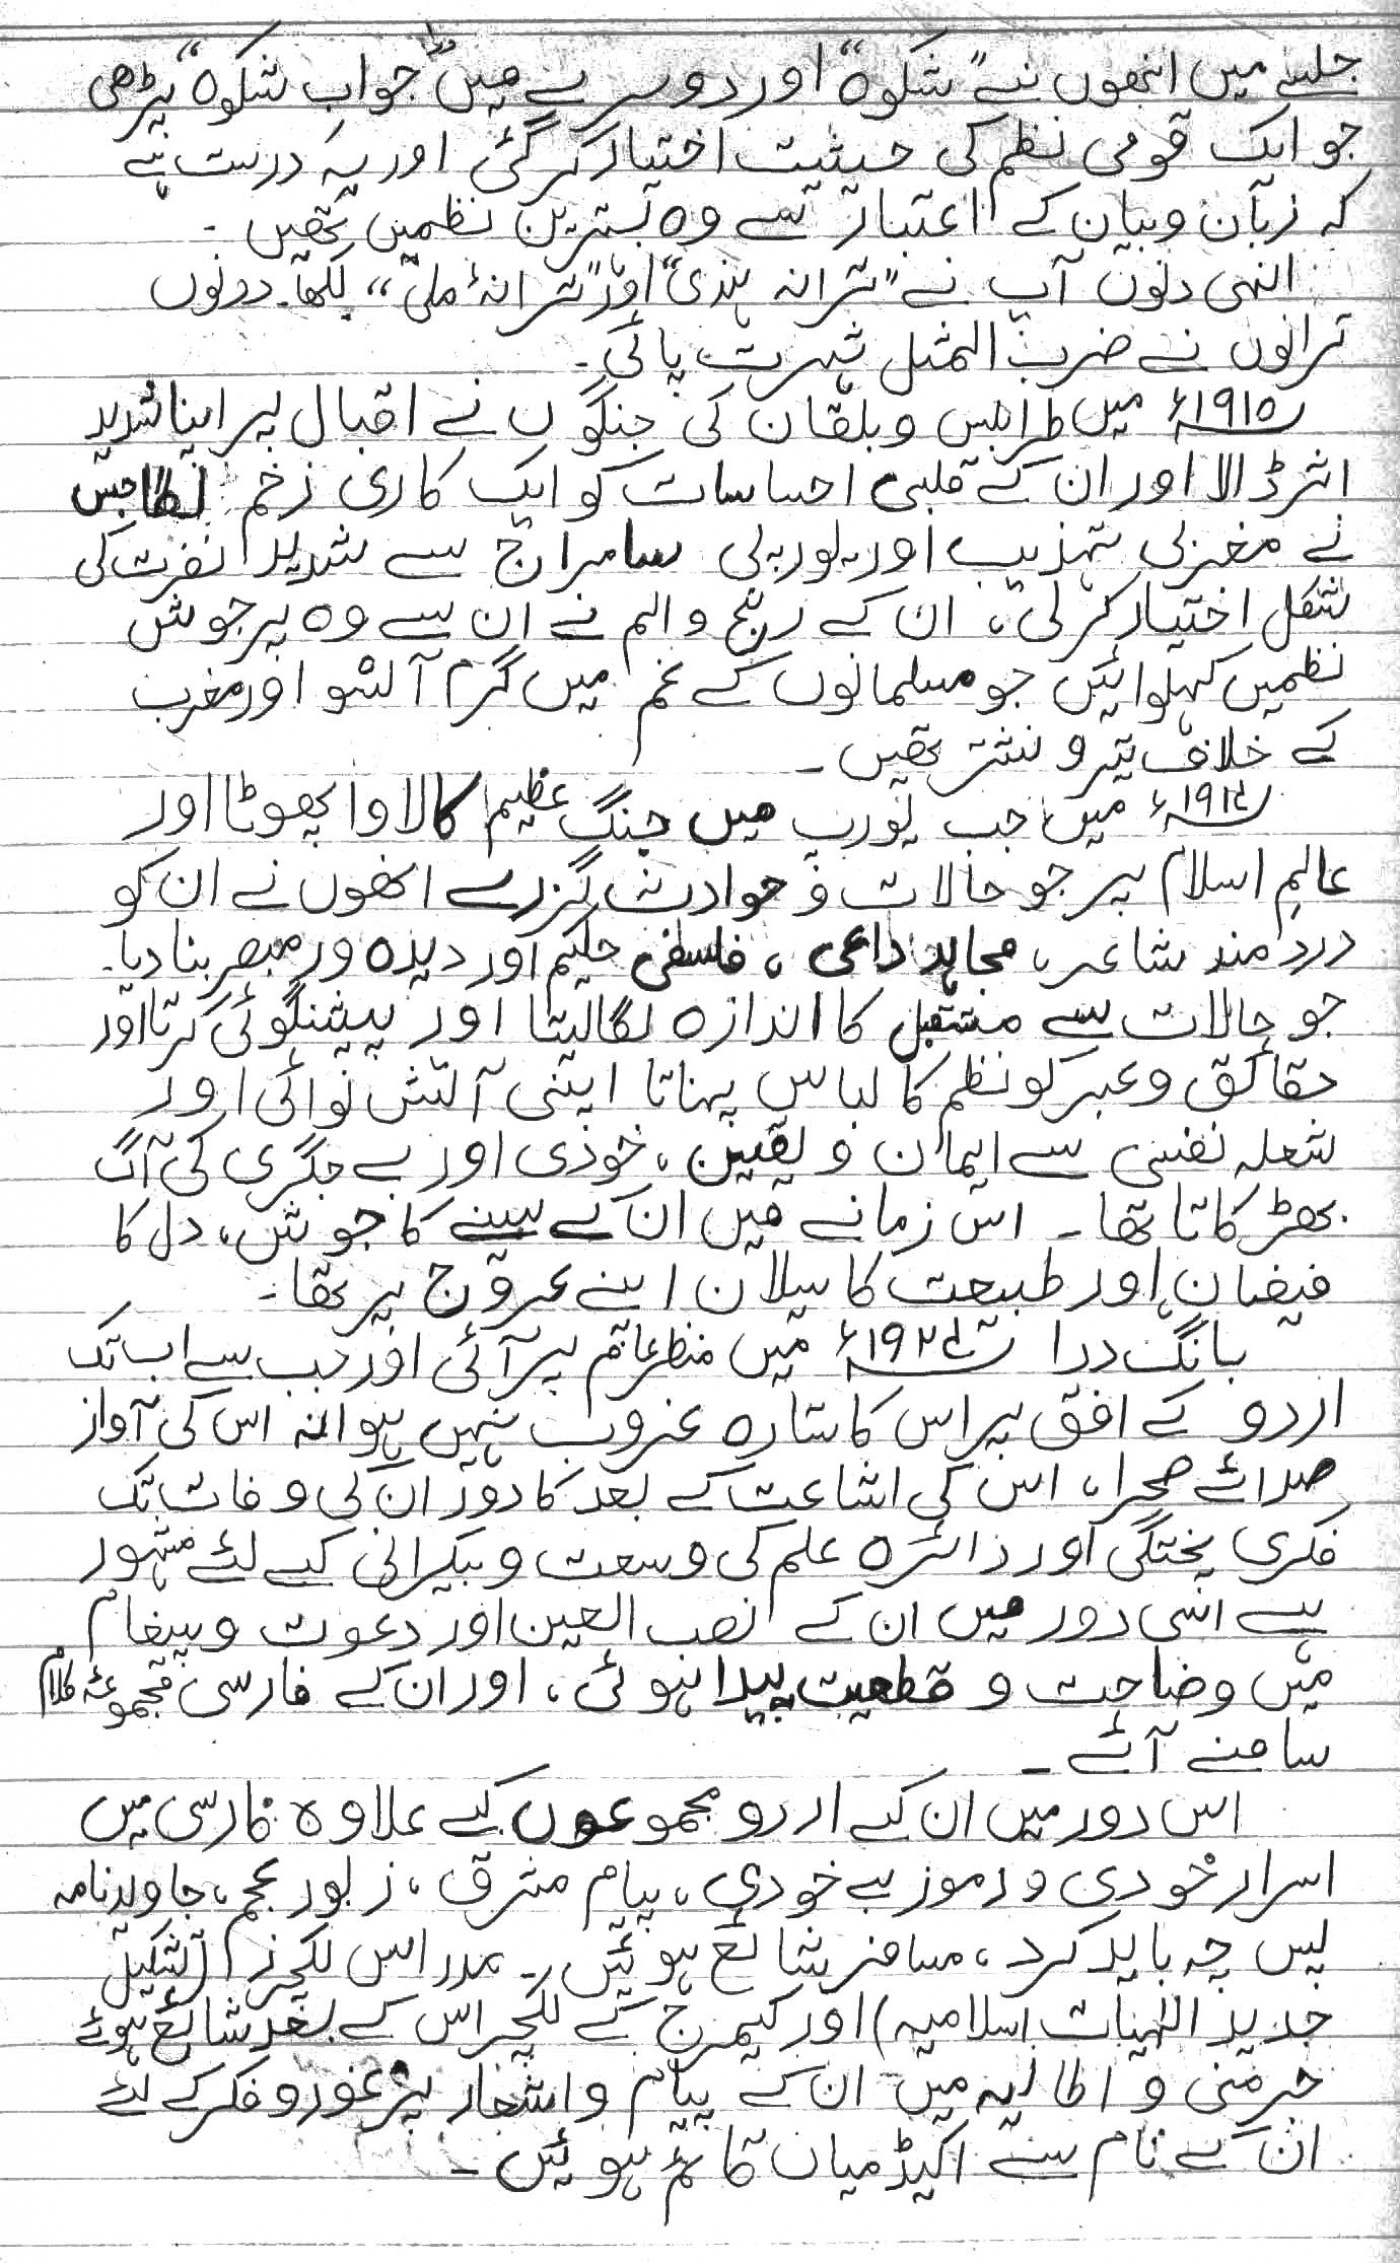 004 Urdu Essay Allama Iqbal Example Dreaded On In For Class 10 With Poetry Ka Shaheen Headings And 1400